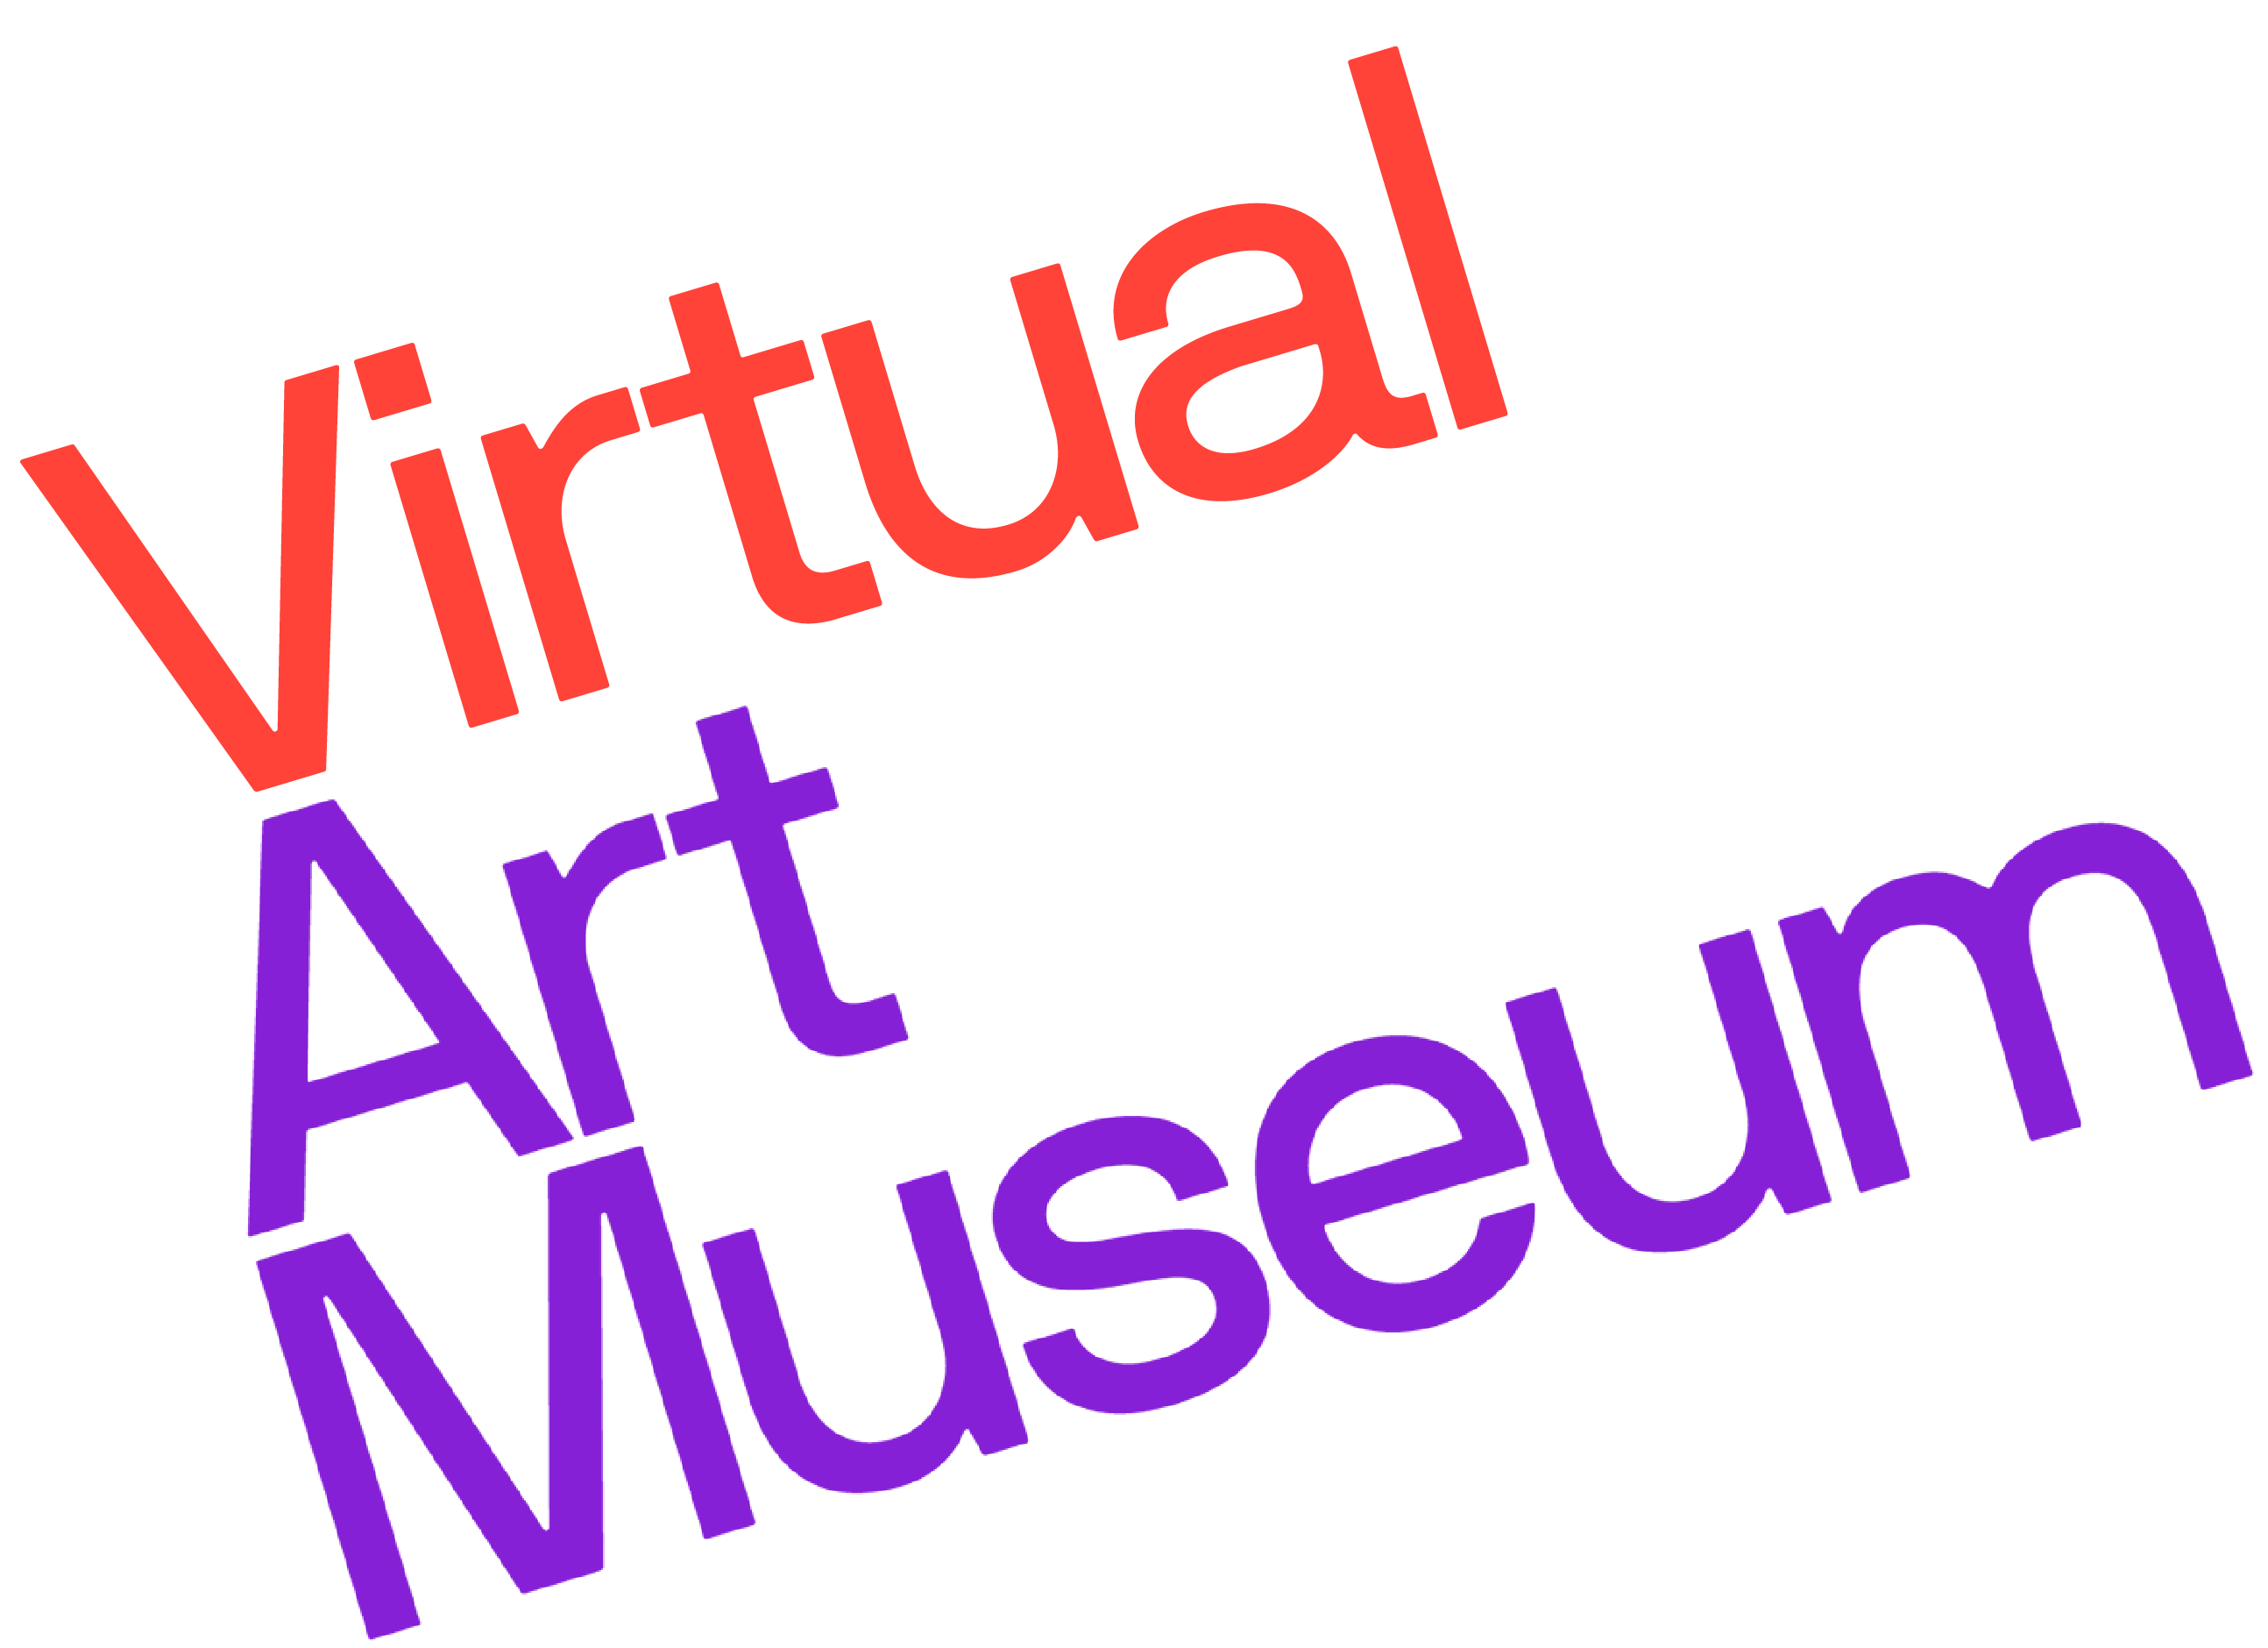 Virtual Art Museum logo in red and purple